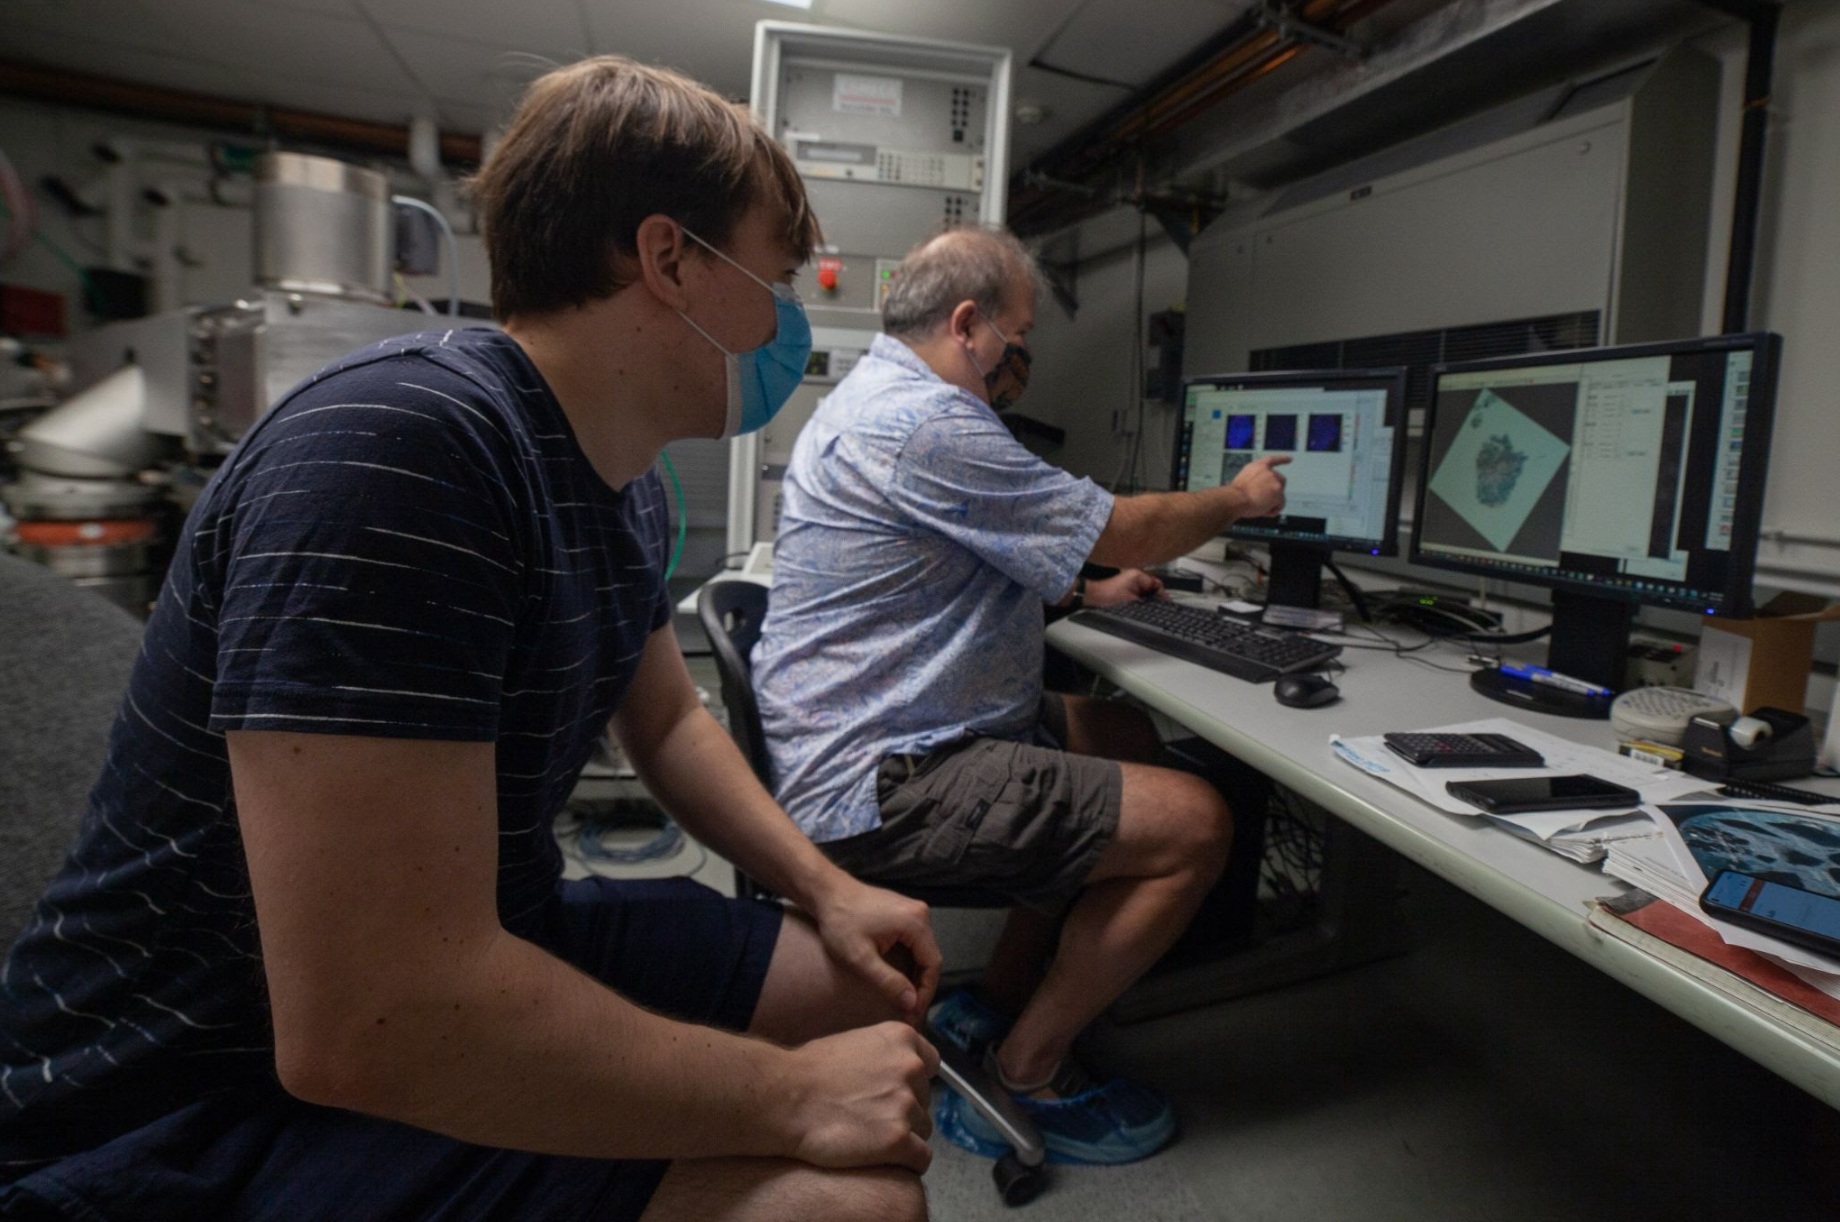 Larry and Jens Point at the Ryugu Asteroid on Screen